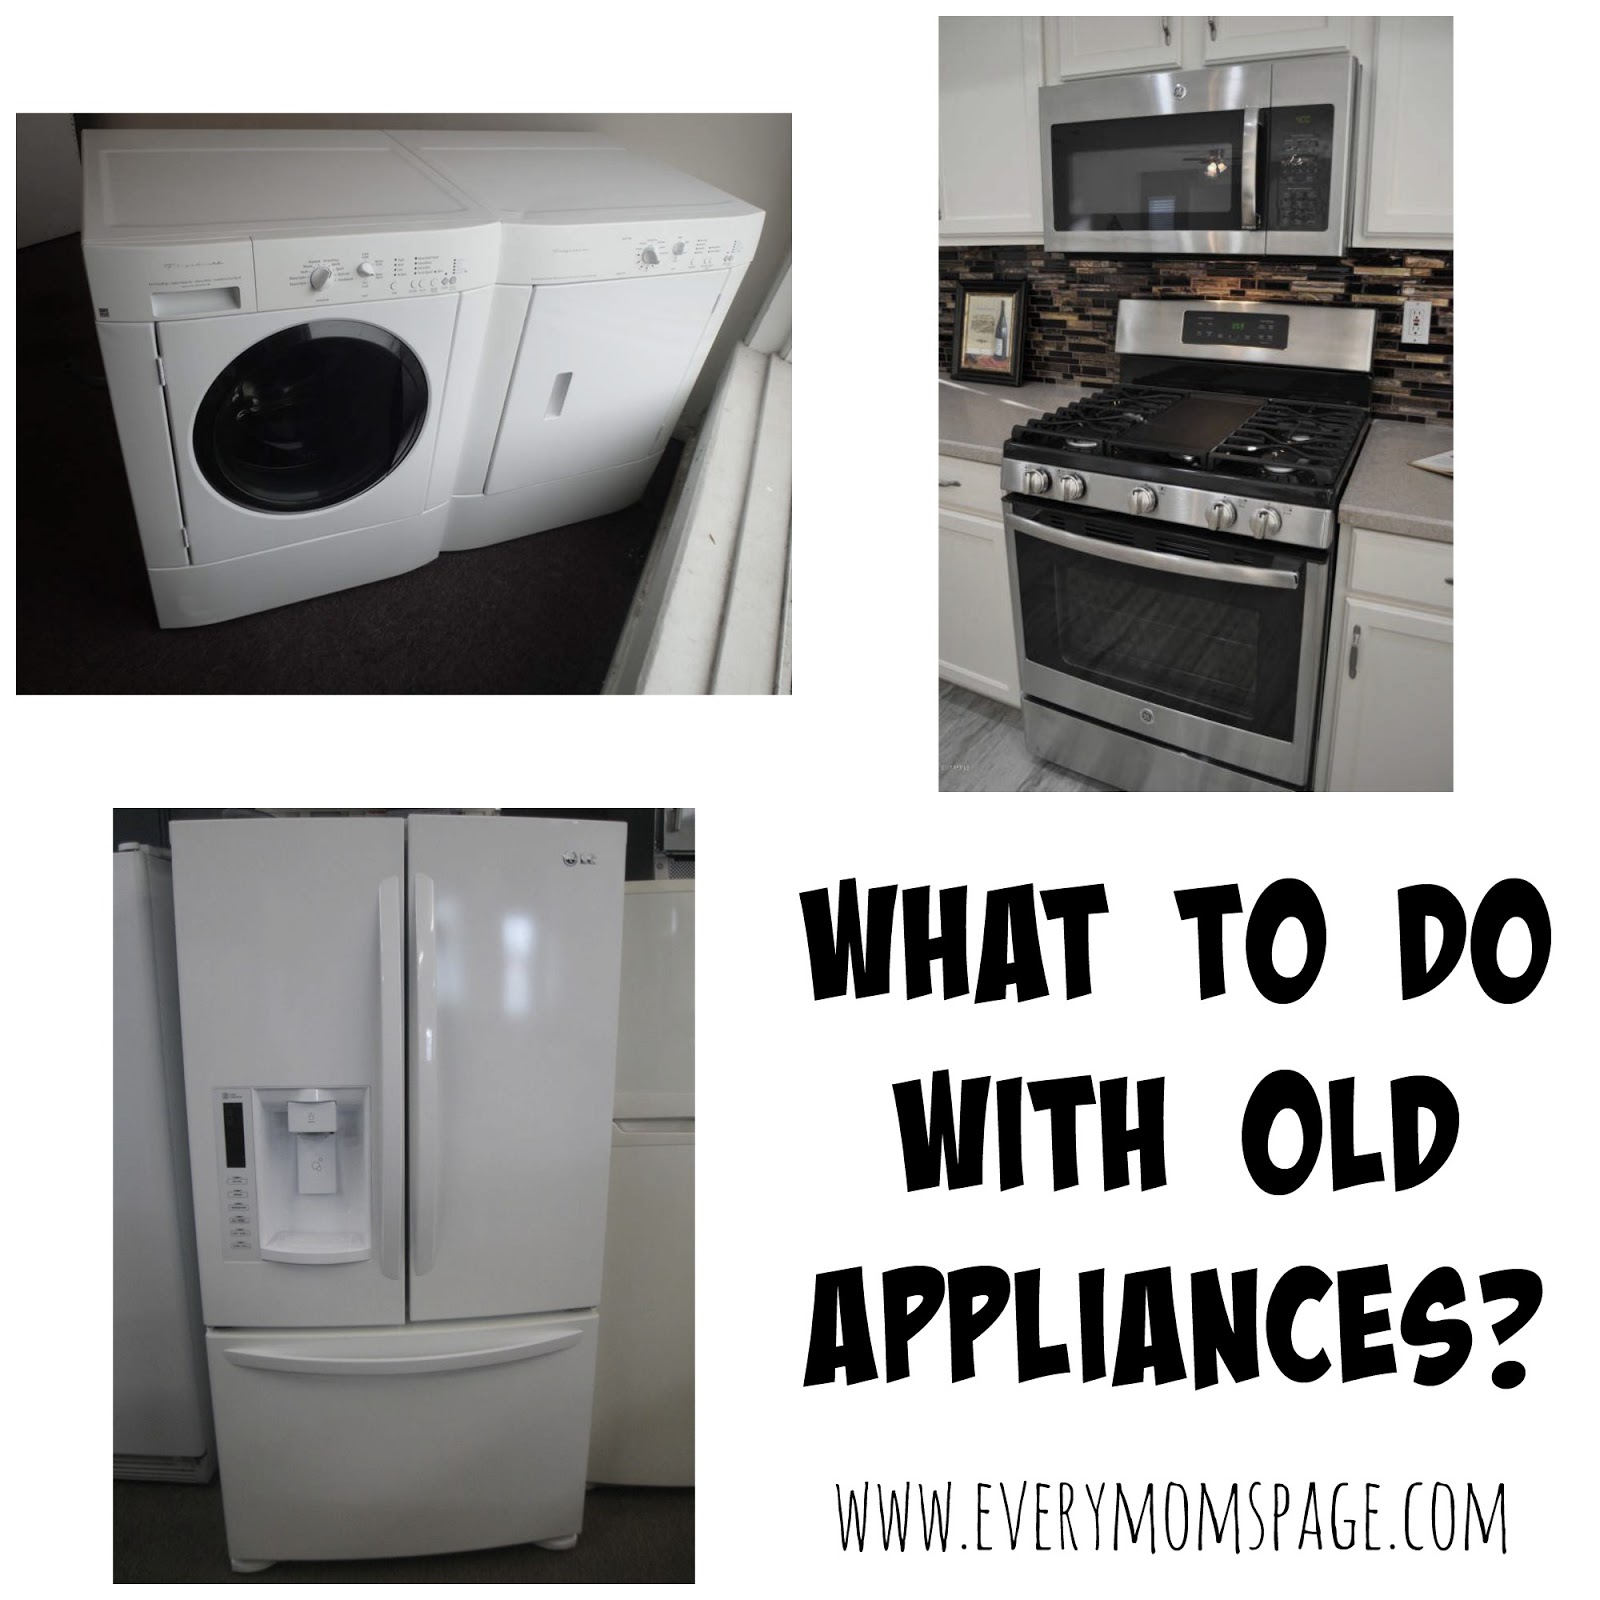 everymom 39 spage what to do with old appliances. Black Bedroom Furniture Sets. Home Design Ideas